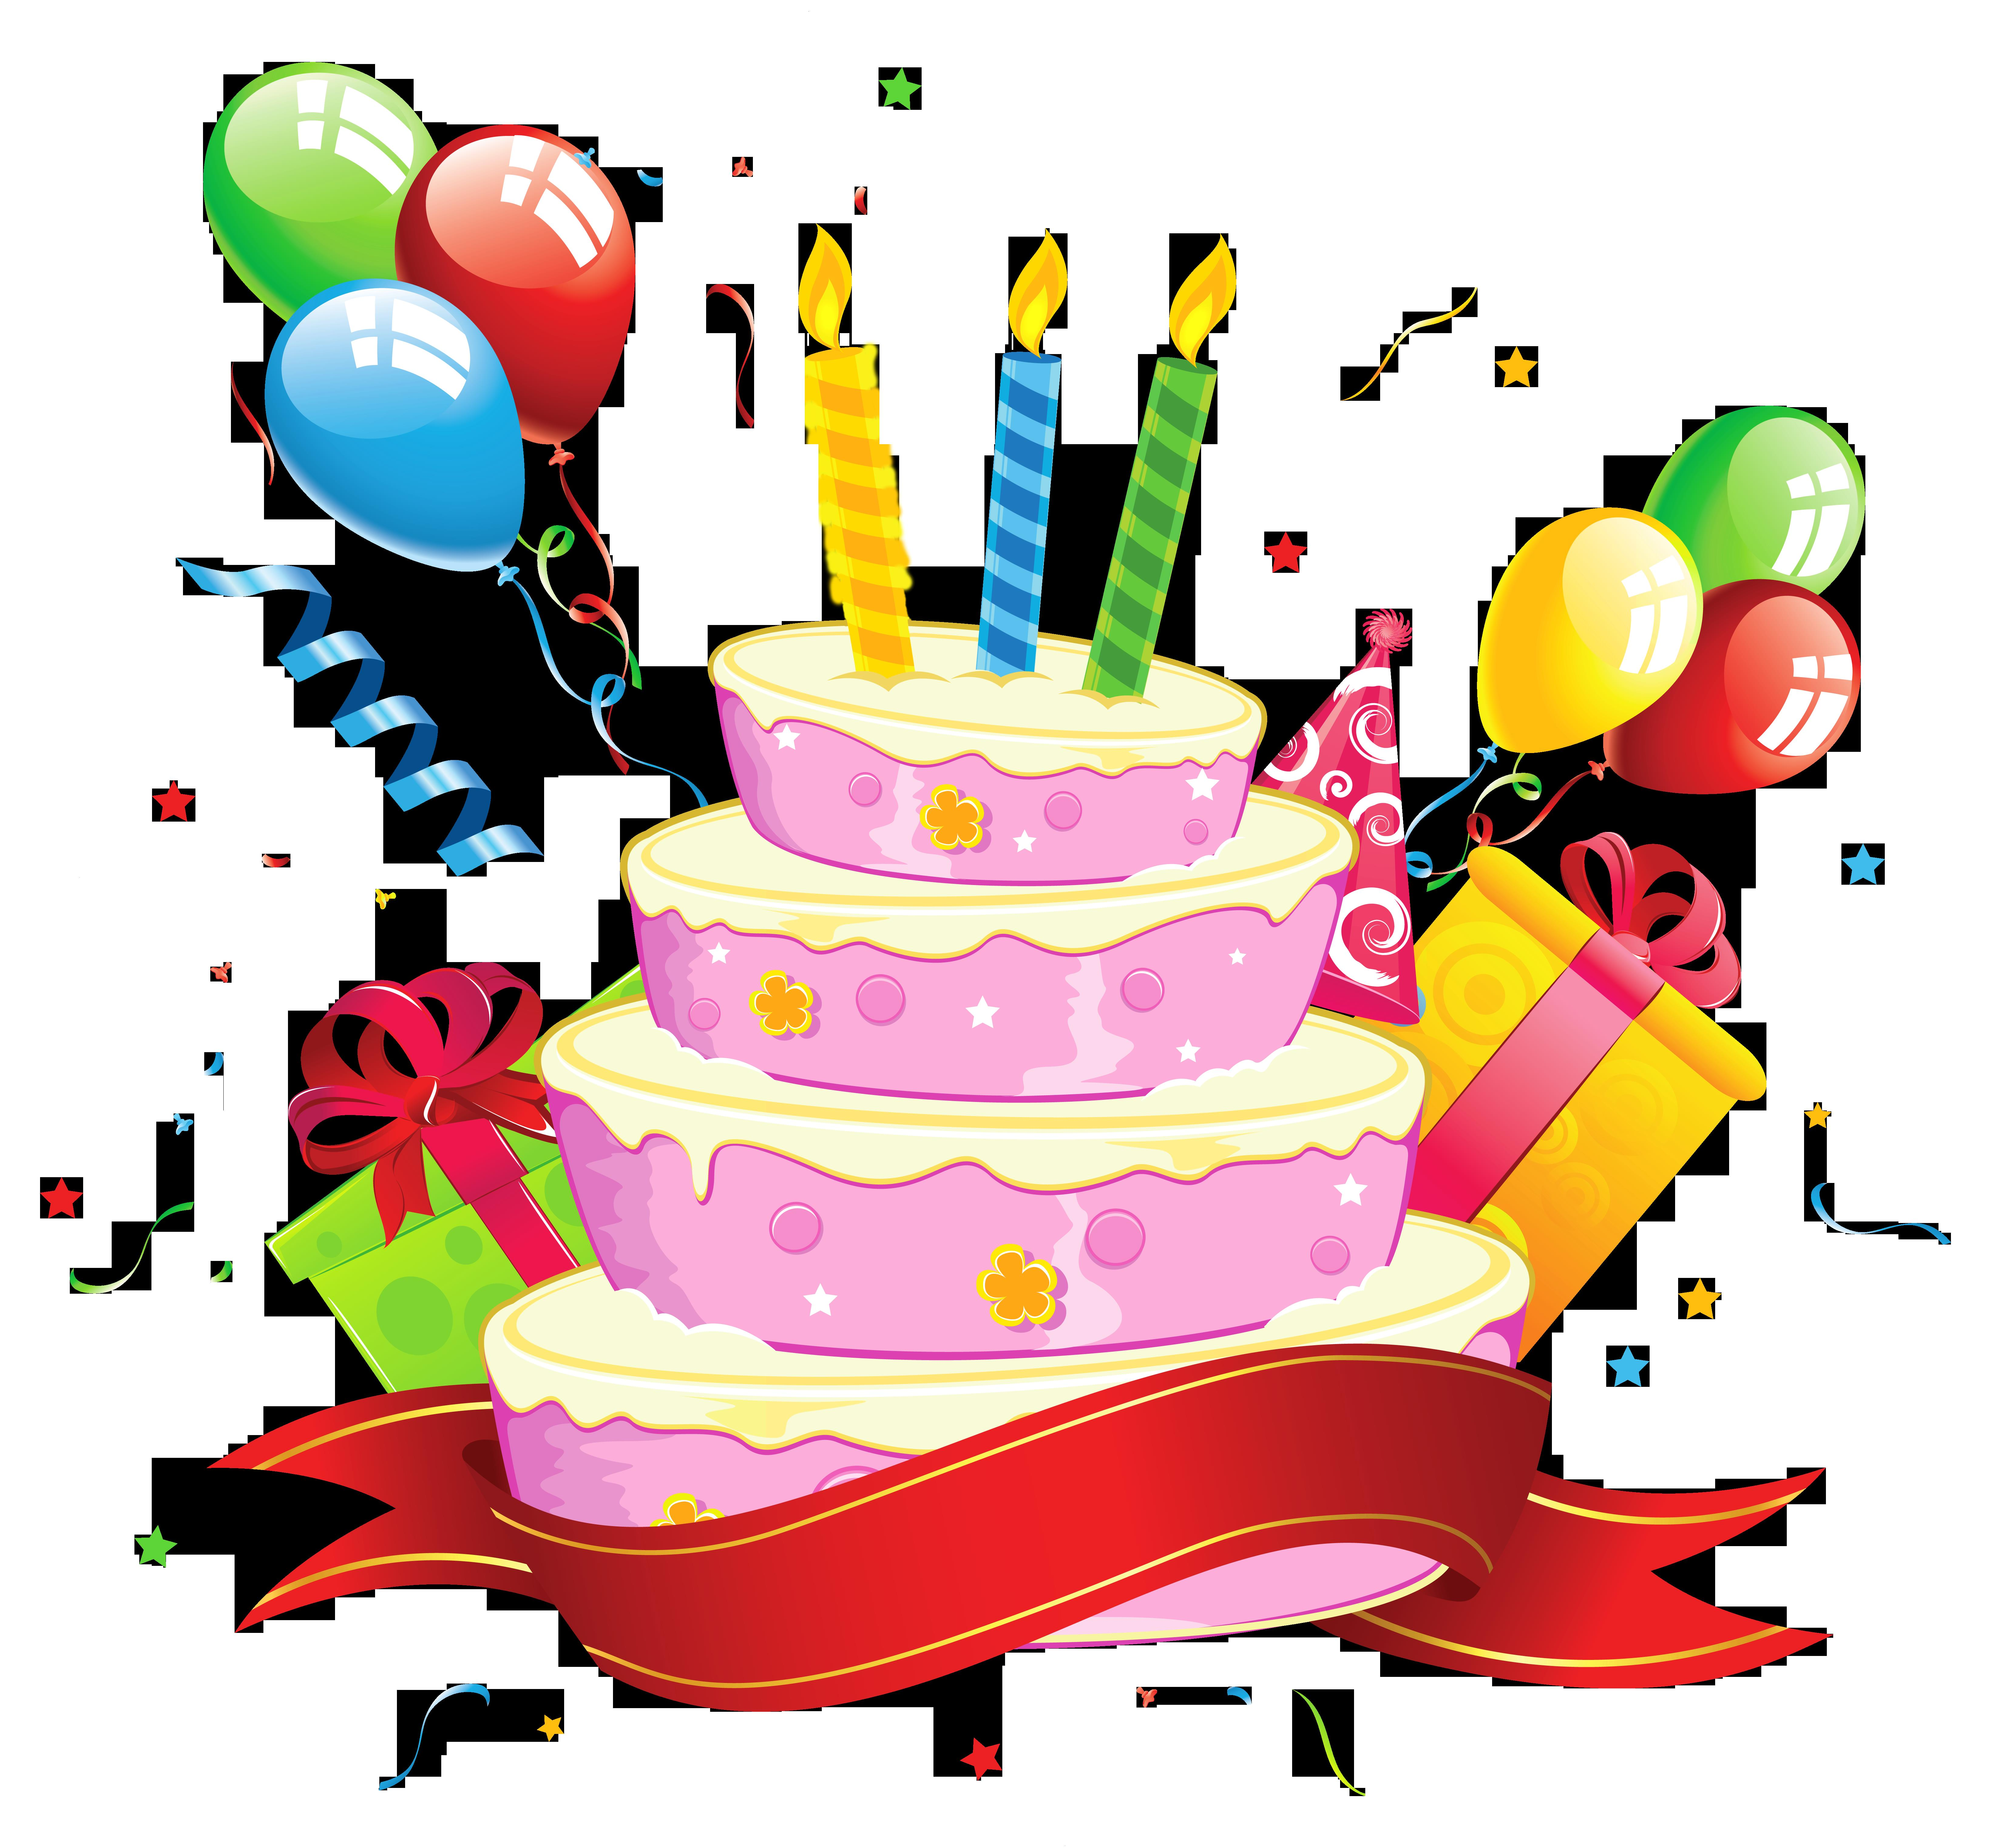 birthday cake clipart animated ; birthday-png-hd-animated-birthday-cake-transparent-clipart-6561